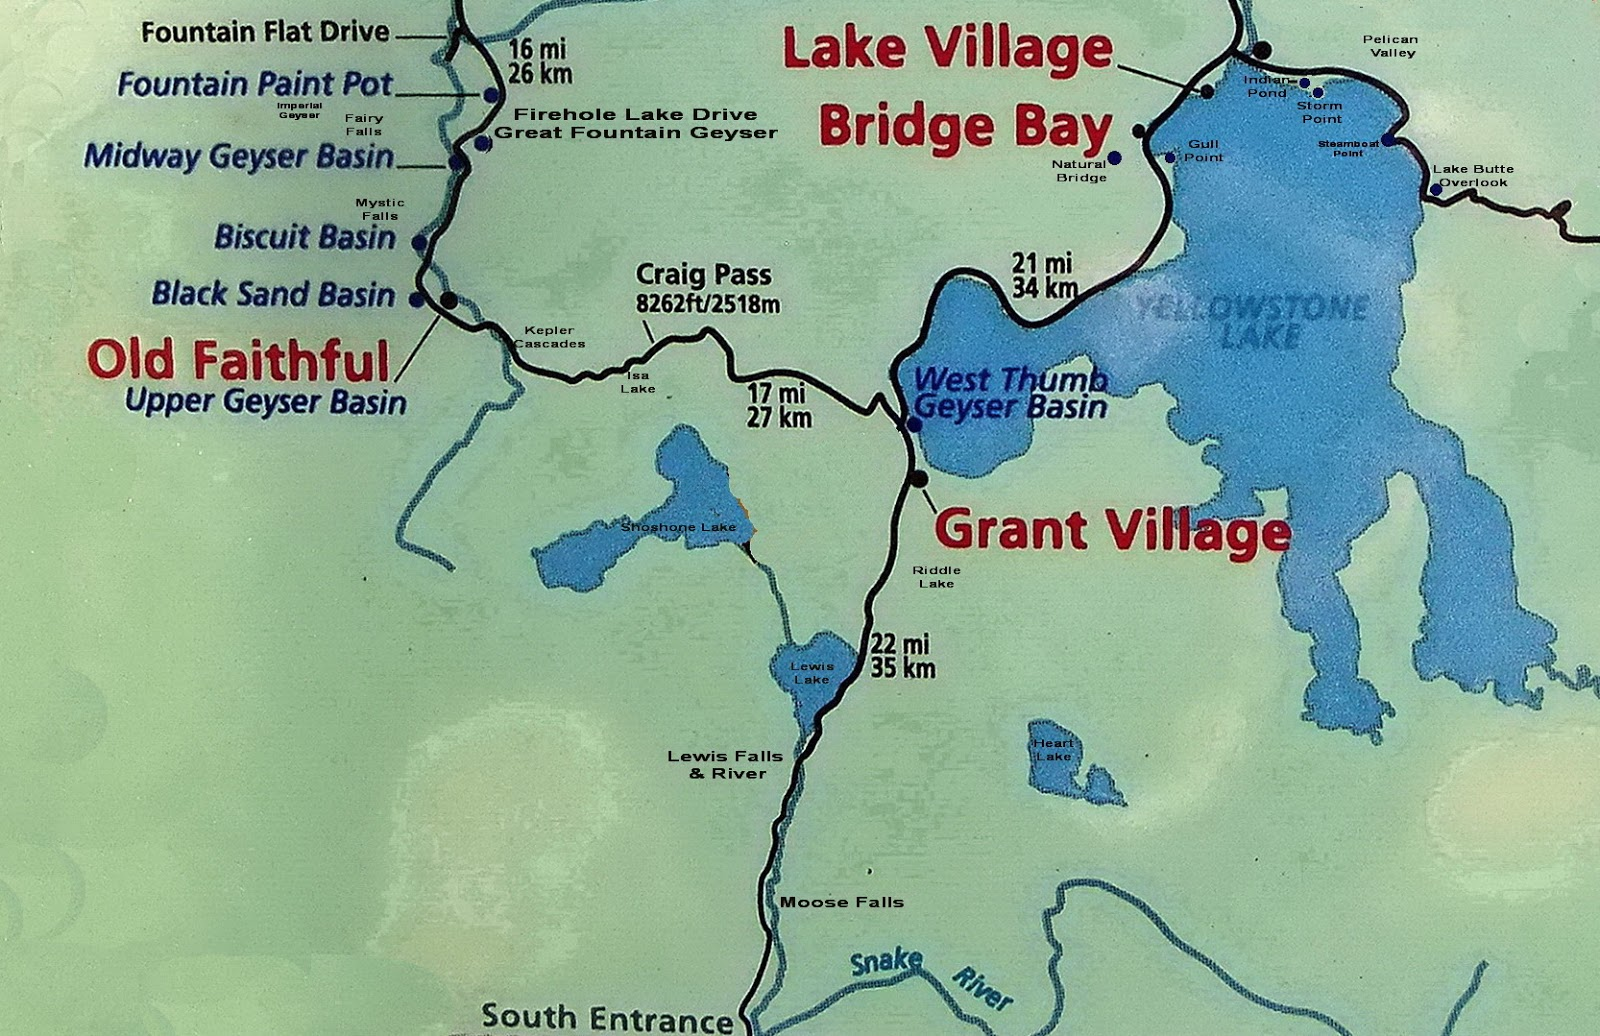 Focusing On Travel : Yellowstone: West Thumb Geyser Basin ... on map of grand prismatic spring, map of yellowstone geysers, map of mud volcano, map of firehole canyon drive, map of mystic falls, map of yellowstone national park, map of old faithful area, map of yellowstone river,